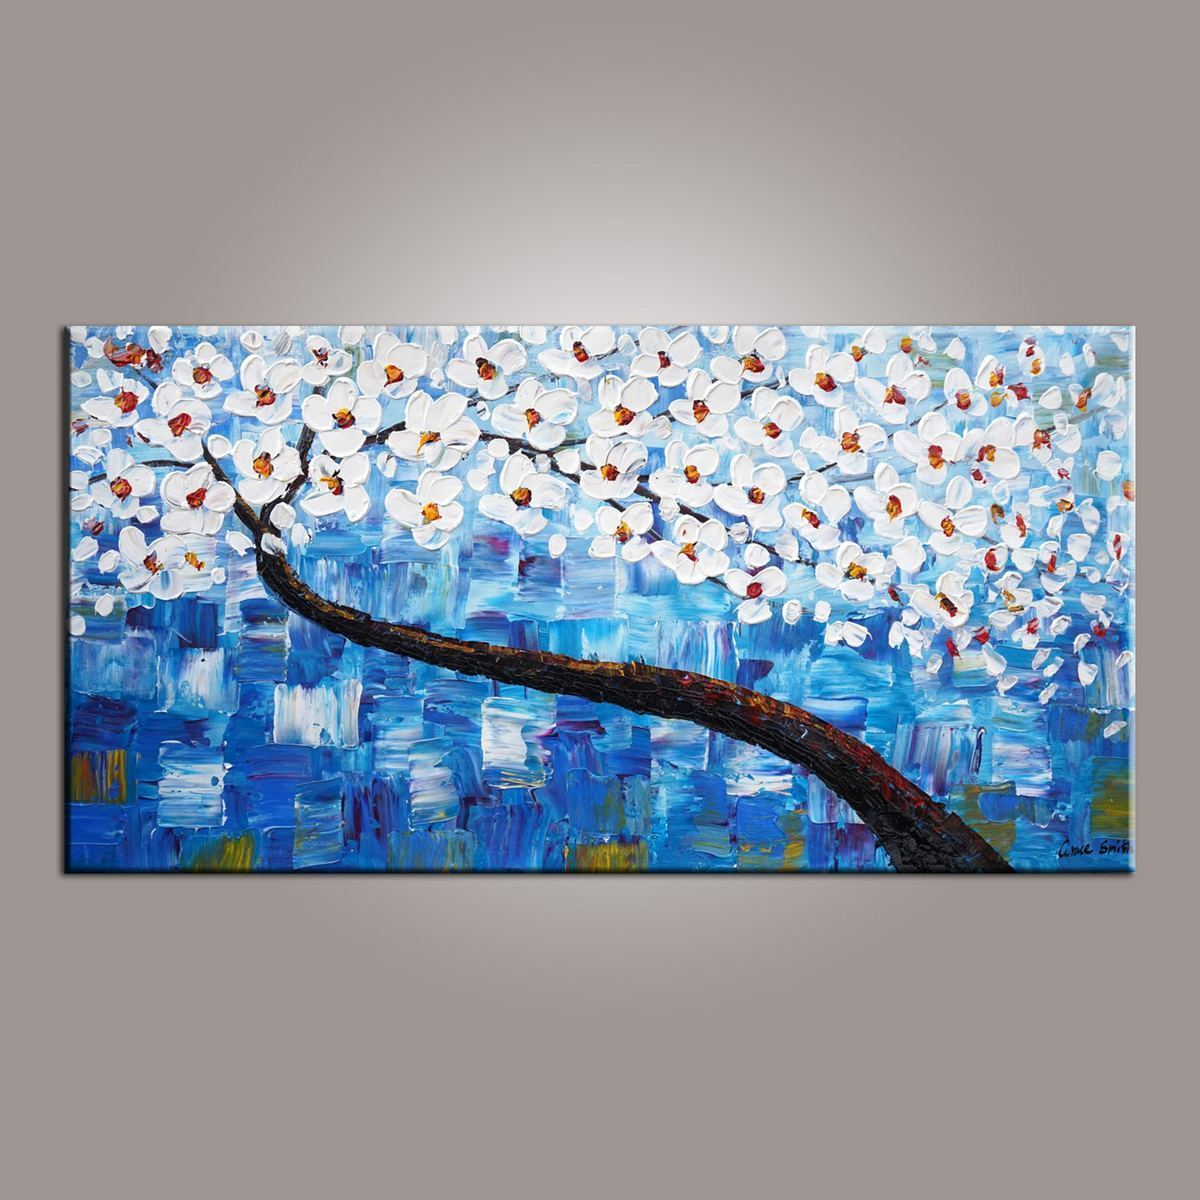 Painting on Sale, Dining Room Wall Art, Canvas Art, Blue Flower Tree Painting, Abstract Painting, Art on Canvas, Modern Art, Contemporary Art-Grace Painting Crafts